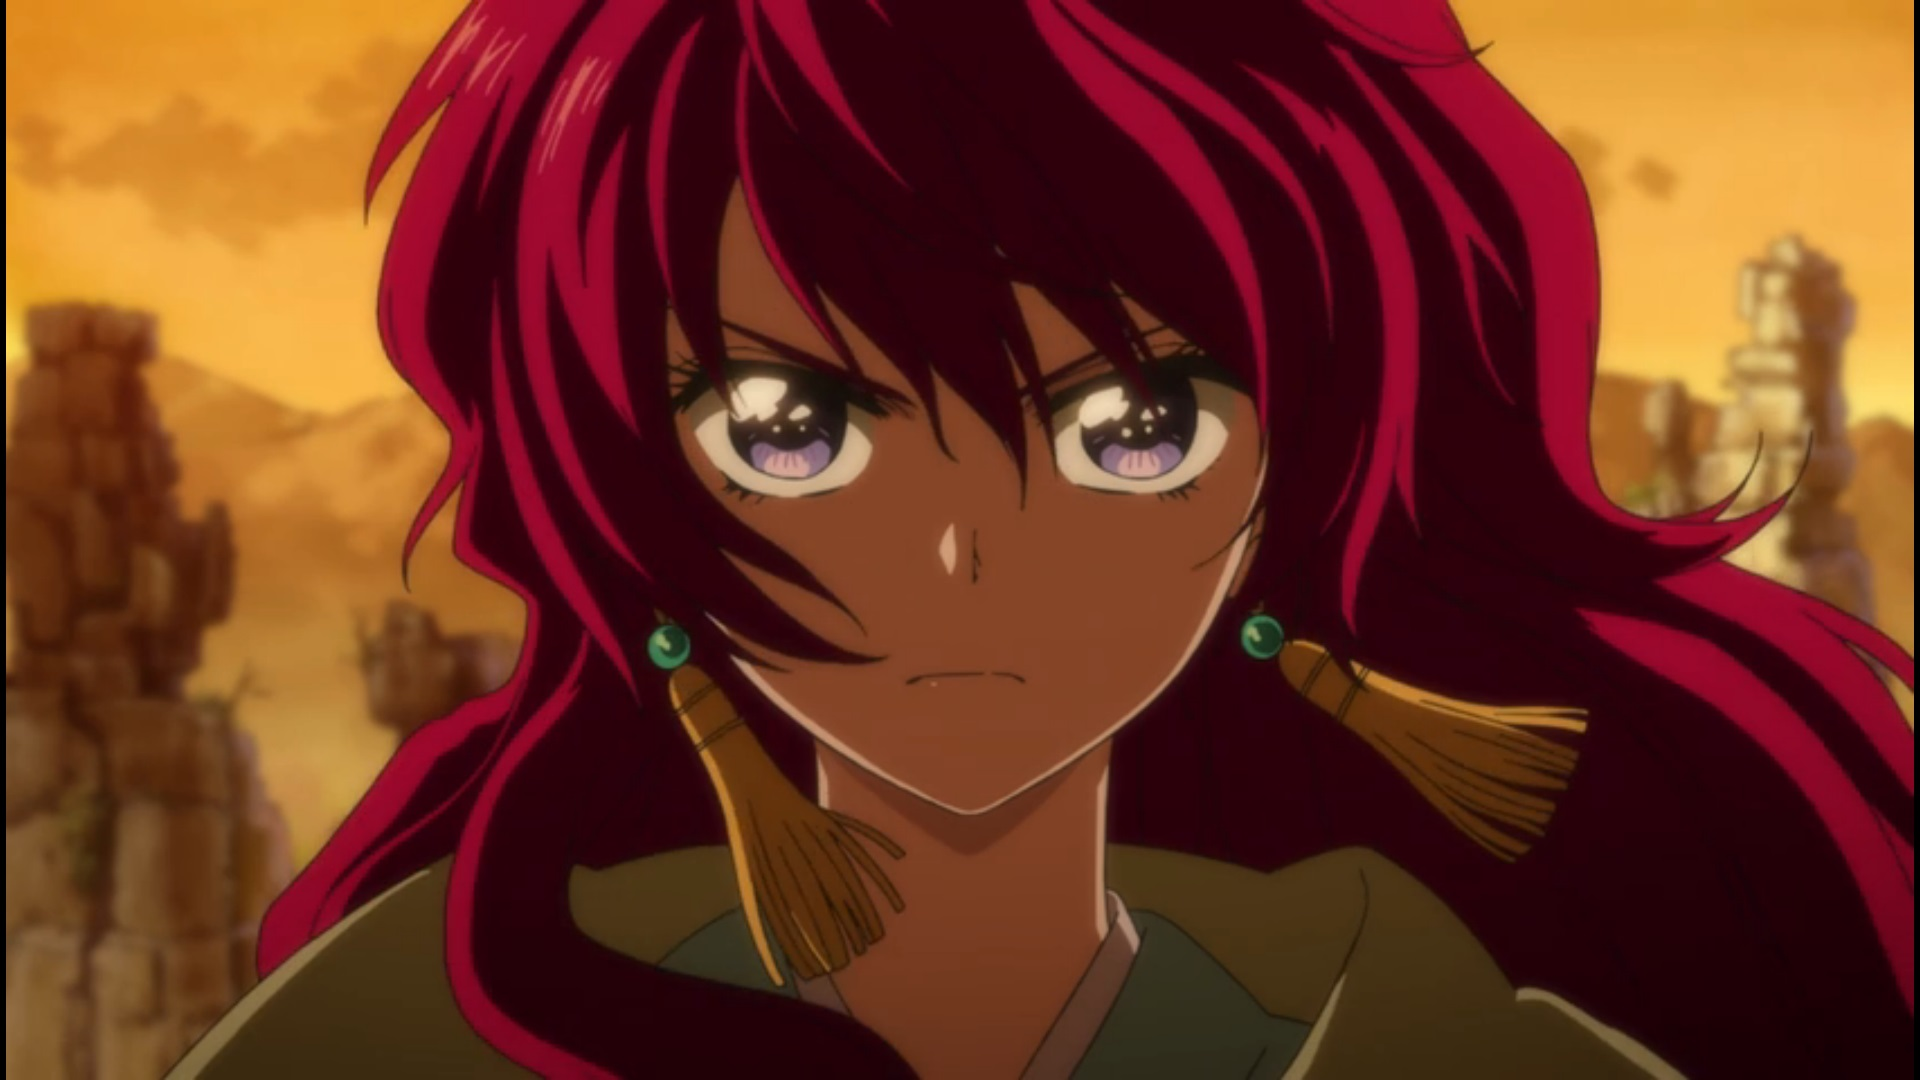 Featured image for Yona of the Dawn